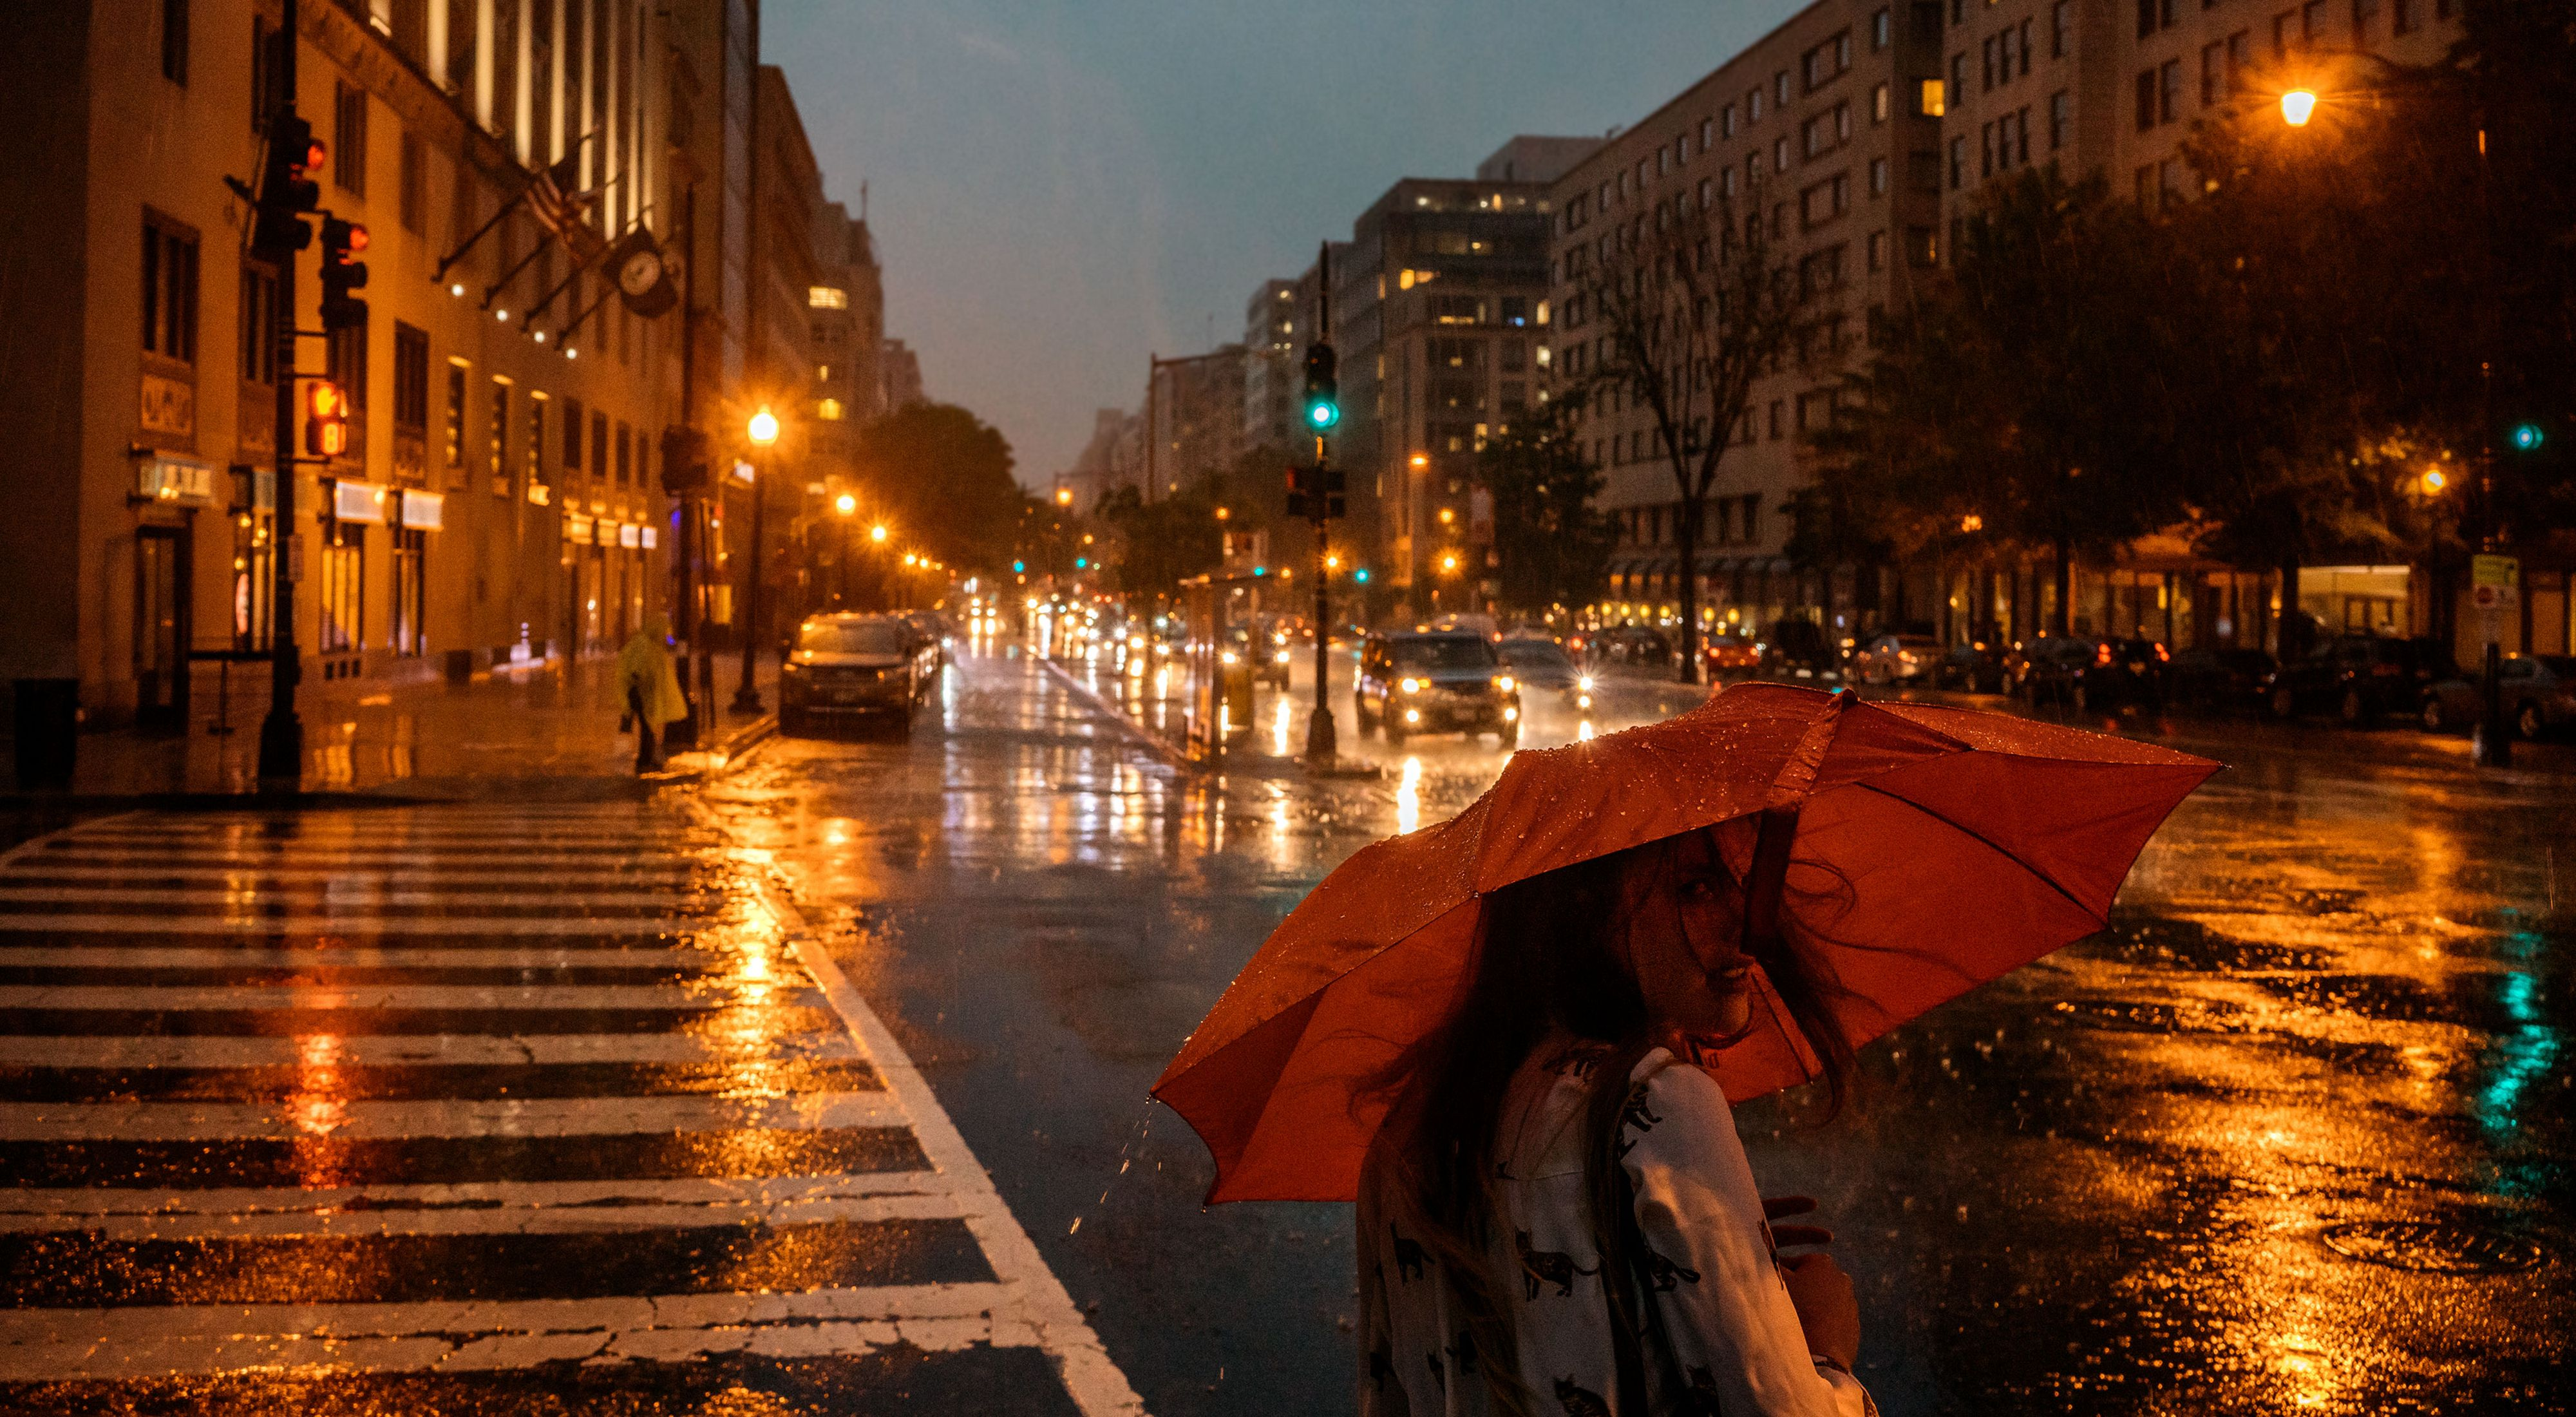 A person with a red umbrella crosses a city street at night.